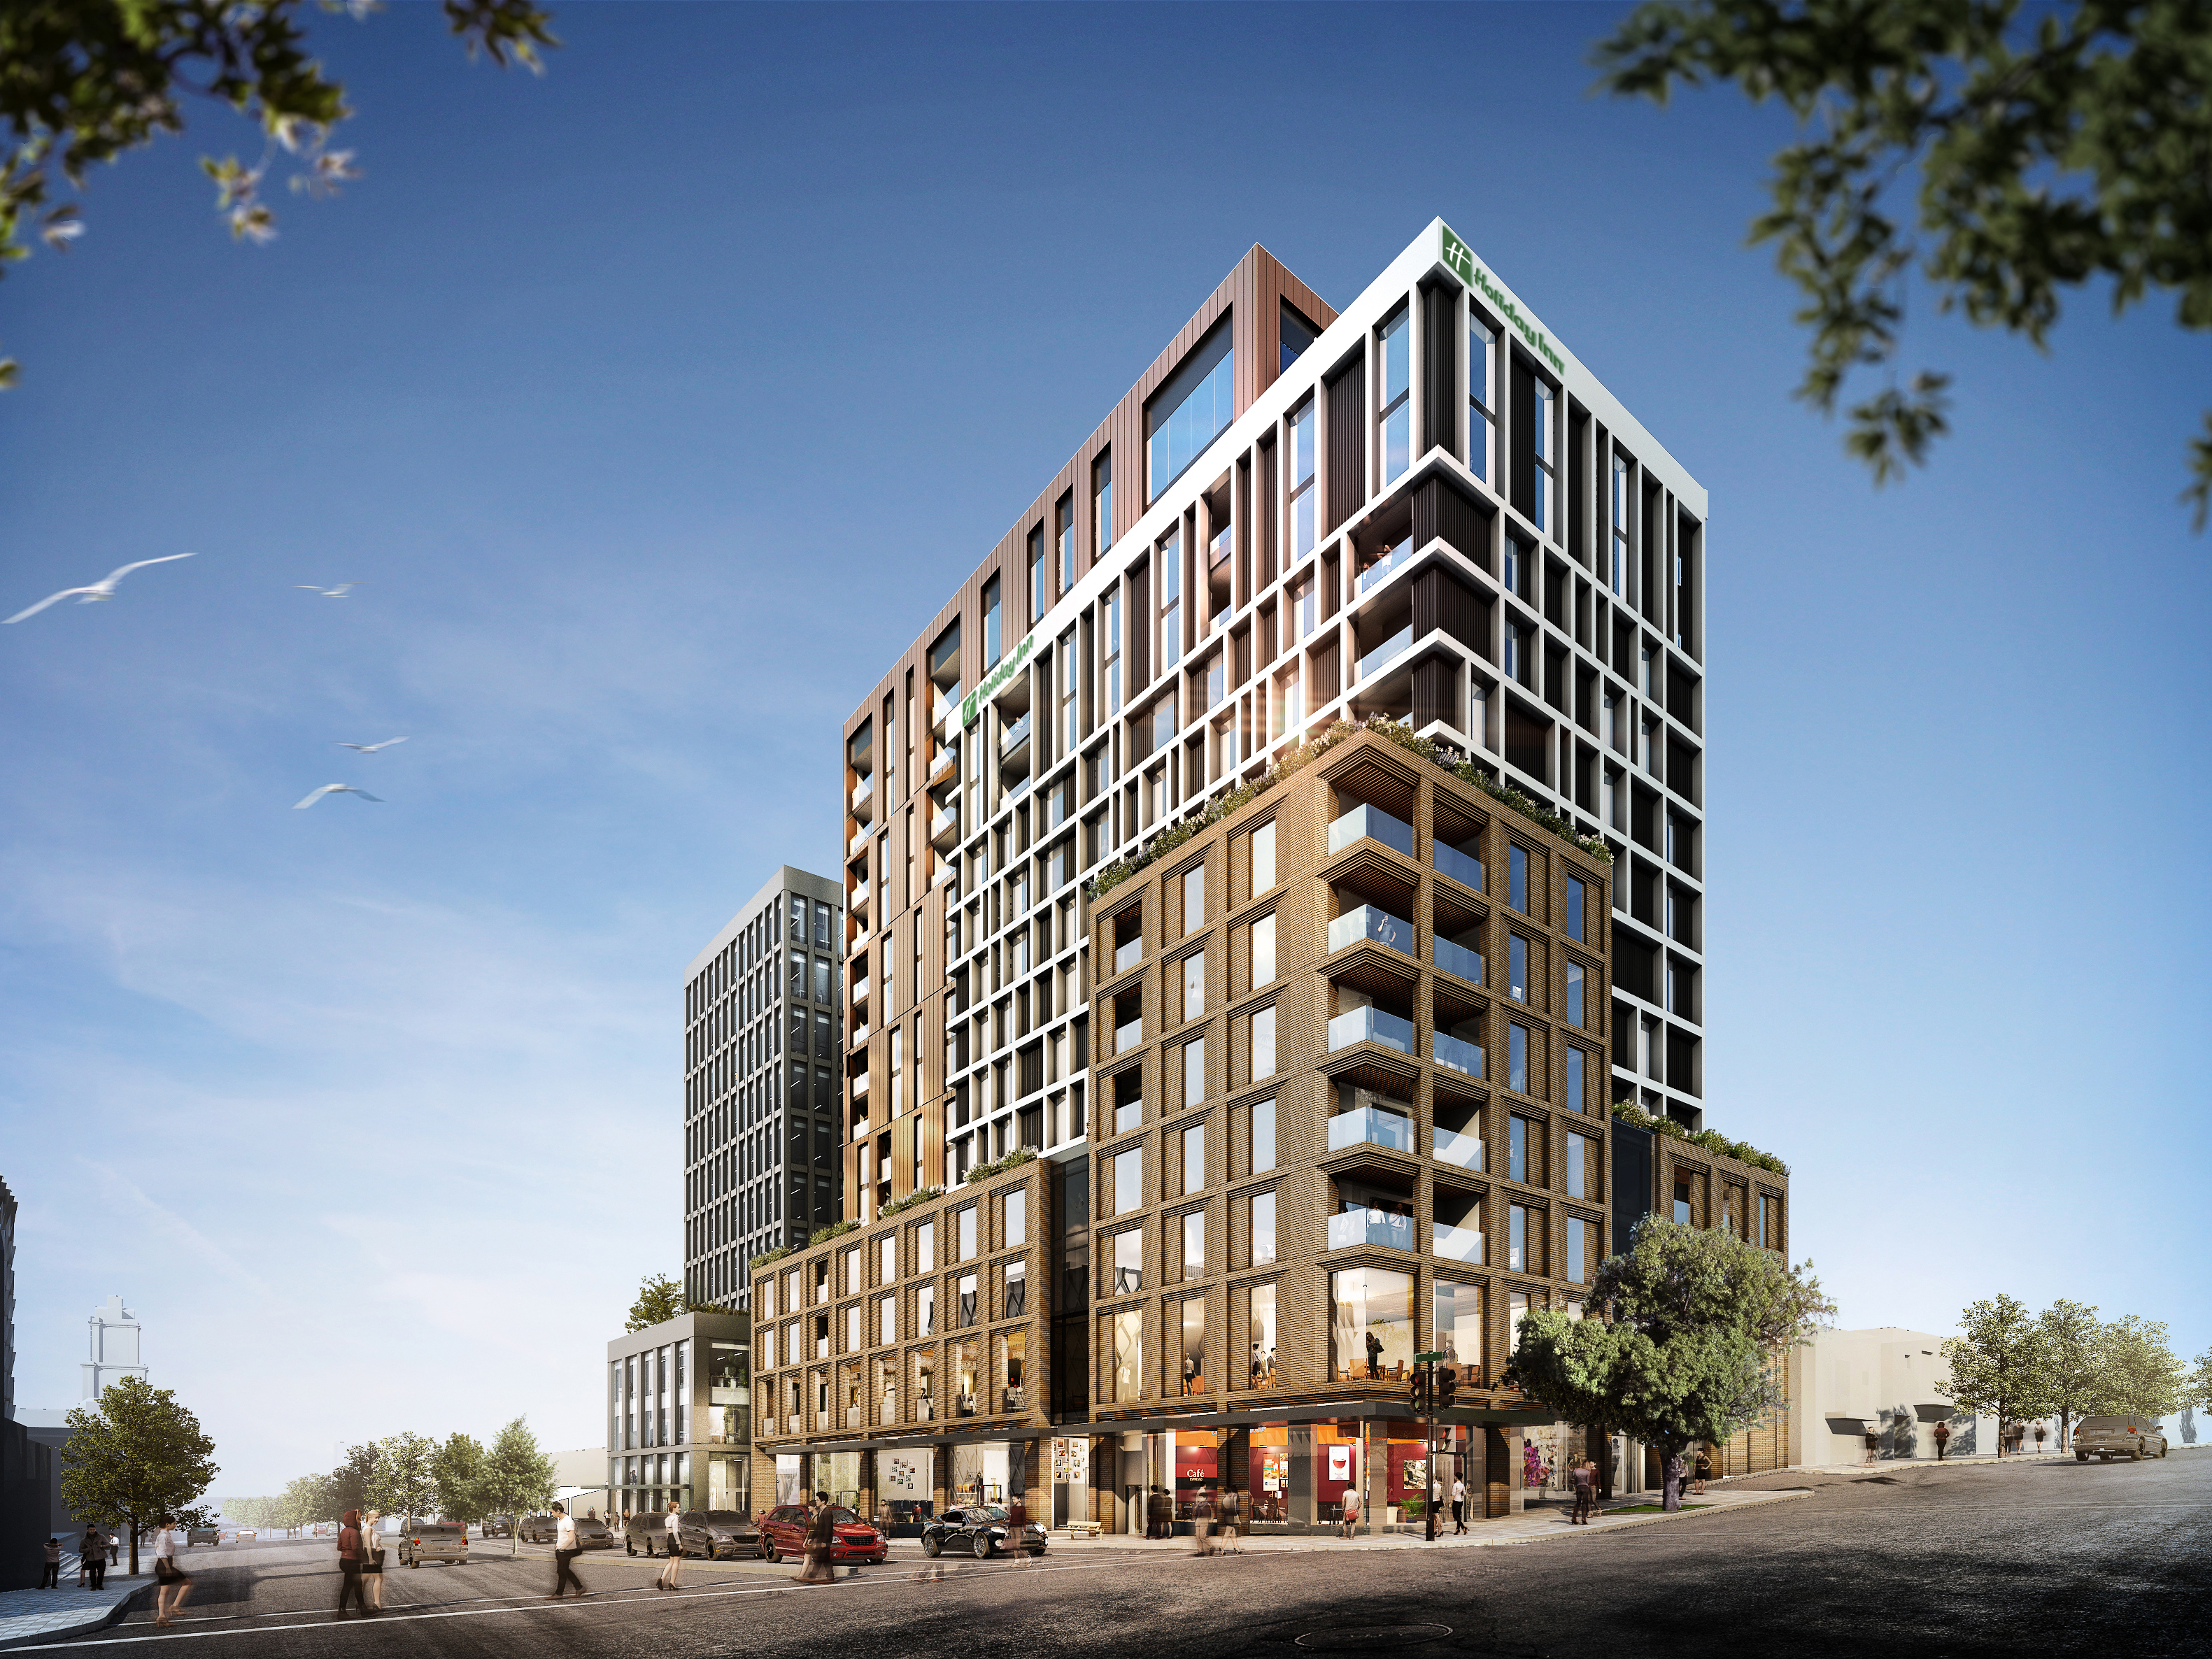 The $150 million Geelong development located at 44 Ryrie Street within the Geelong Activity Centre Zone will comprise 1,000sqm of ground floor retail, 7400sqm office space, 24 residential apartments and a 180 bed hotel, all connected by a highly activated street level plane with public access. Image: Supplied